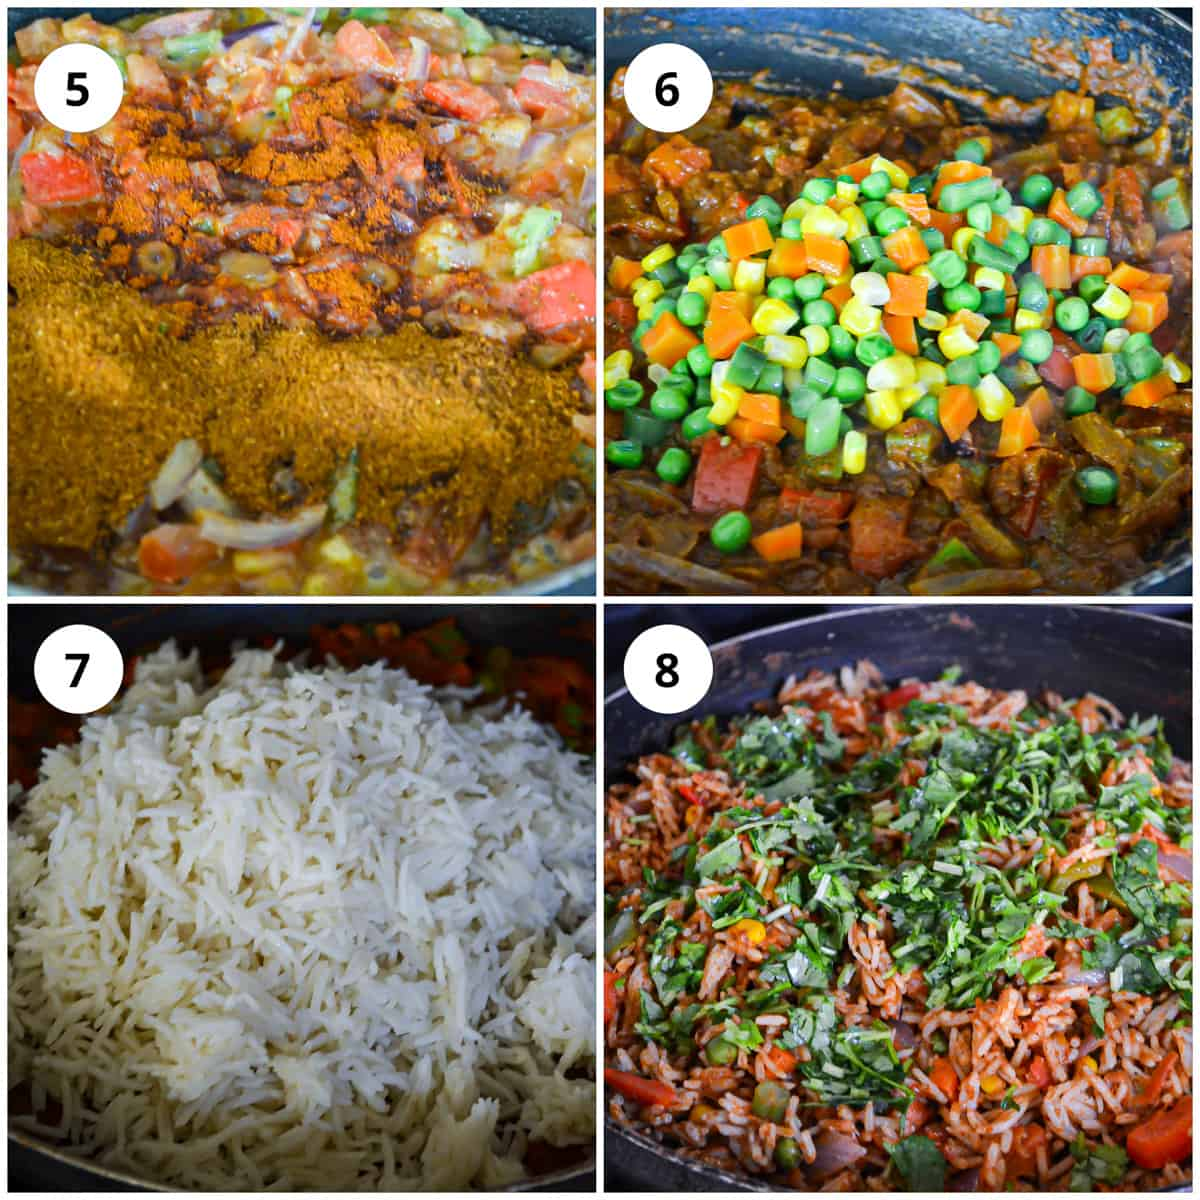 Addin the vegetables and the rice to the pan